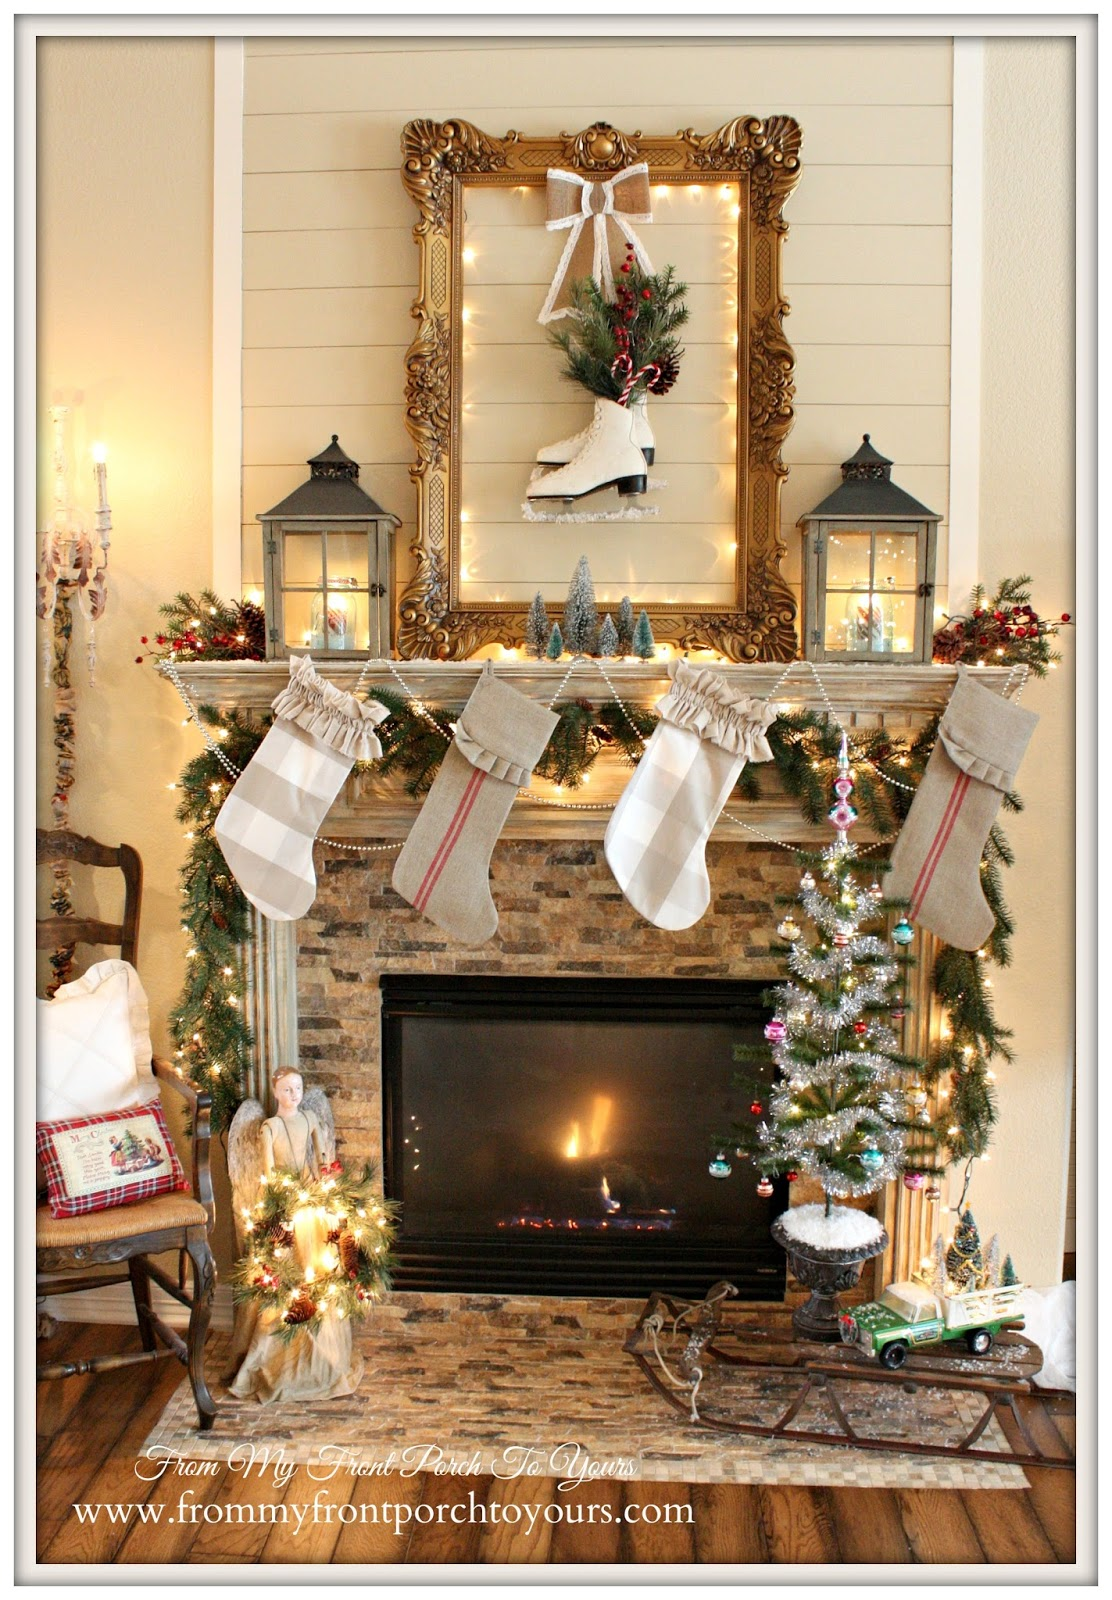 Christmas Mantel-Ideas-French Farmhouse-French Country- Vintage Christmas Mantel- From My Front Porch To Yours